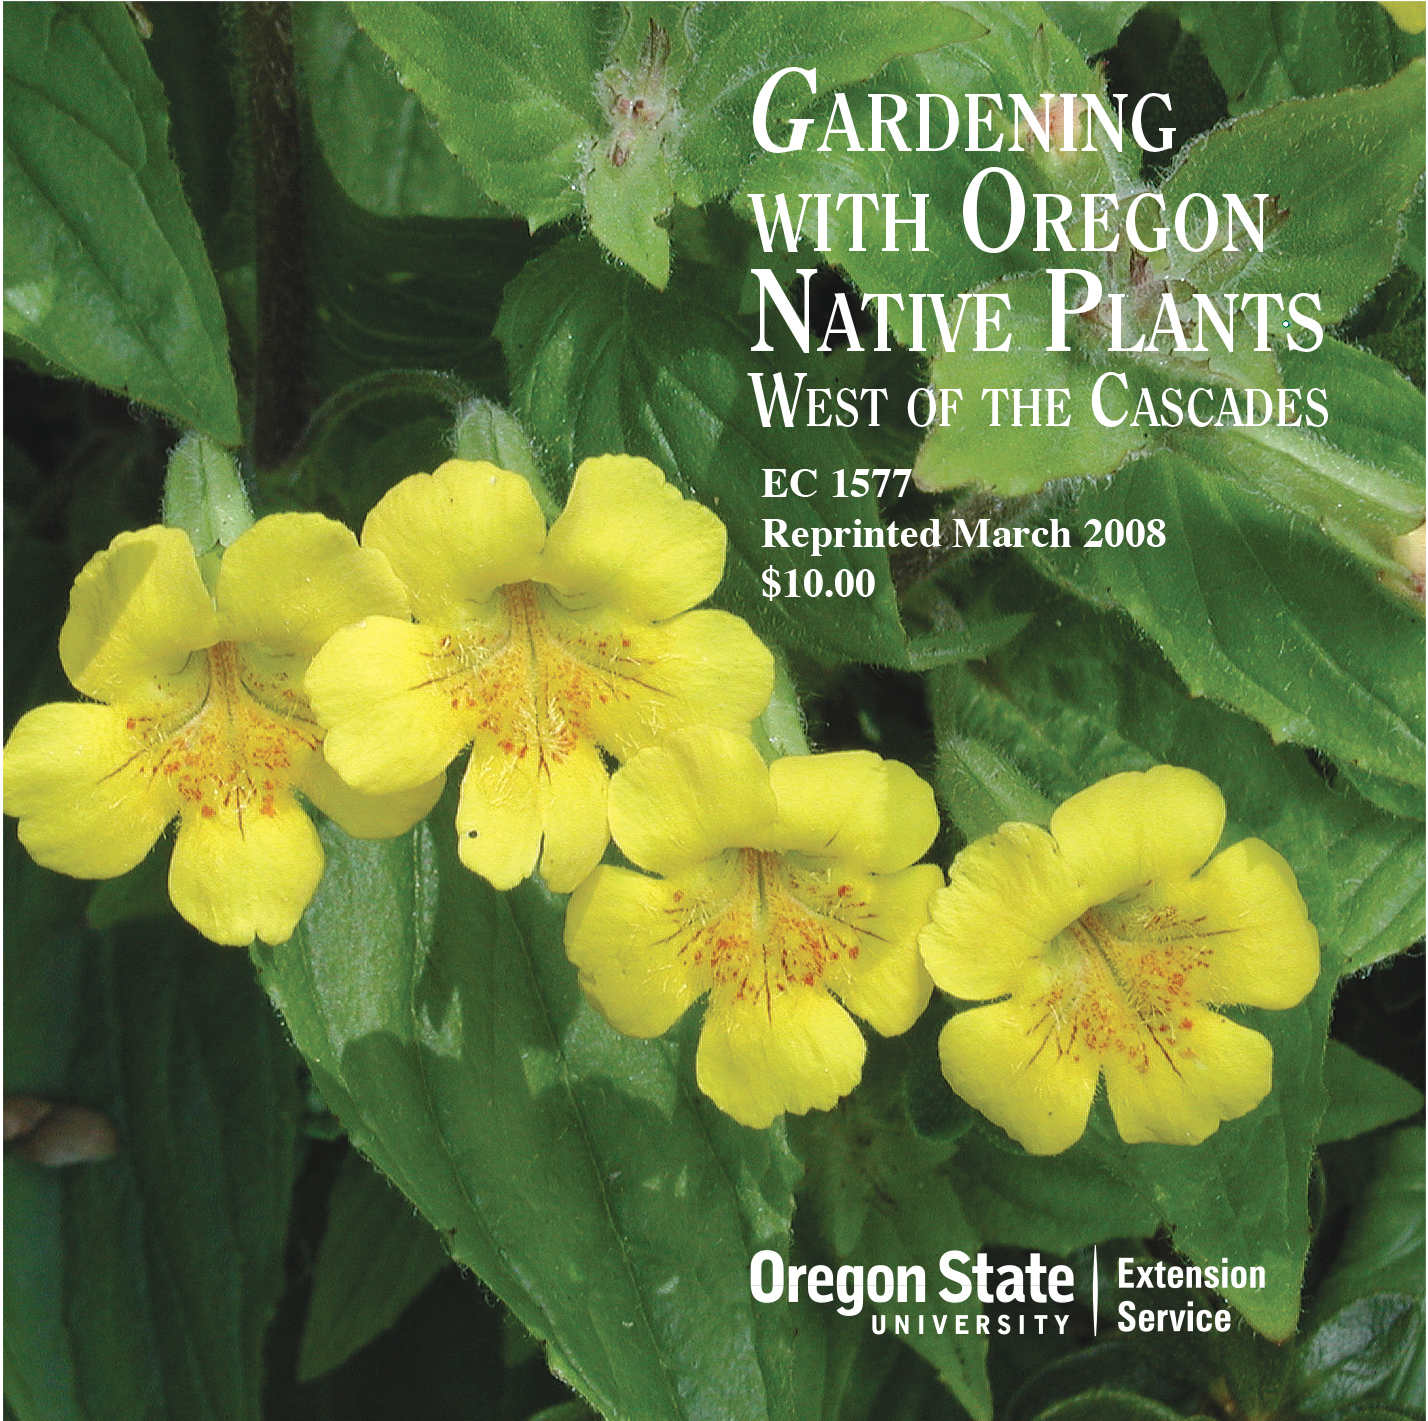 Native Plants To Oregon Part - 35: Gardening With Oregon Native Plants West Of The Cascades   OSU Extension  Catalog   Oregon State University